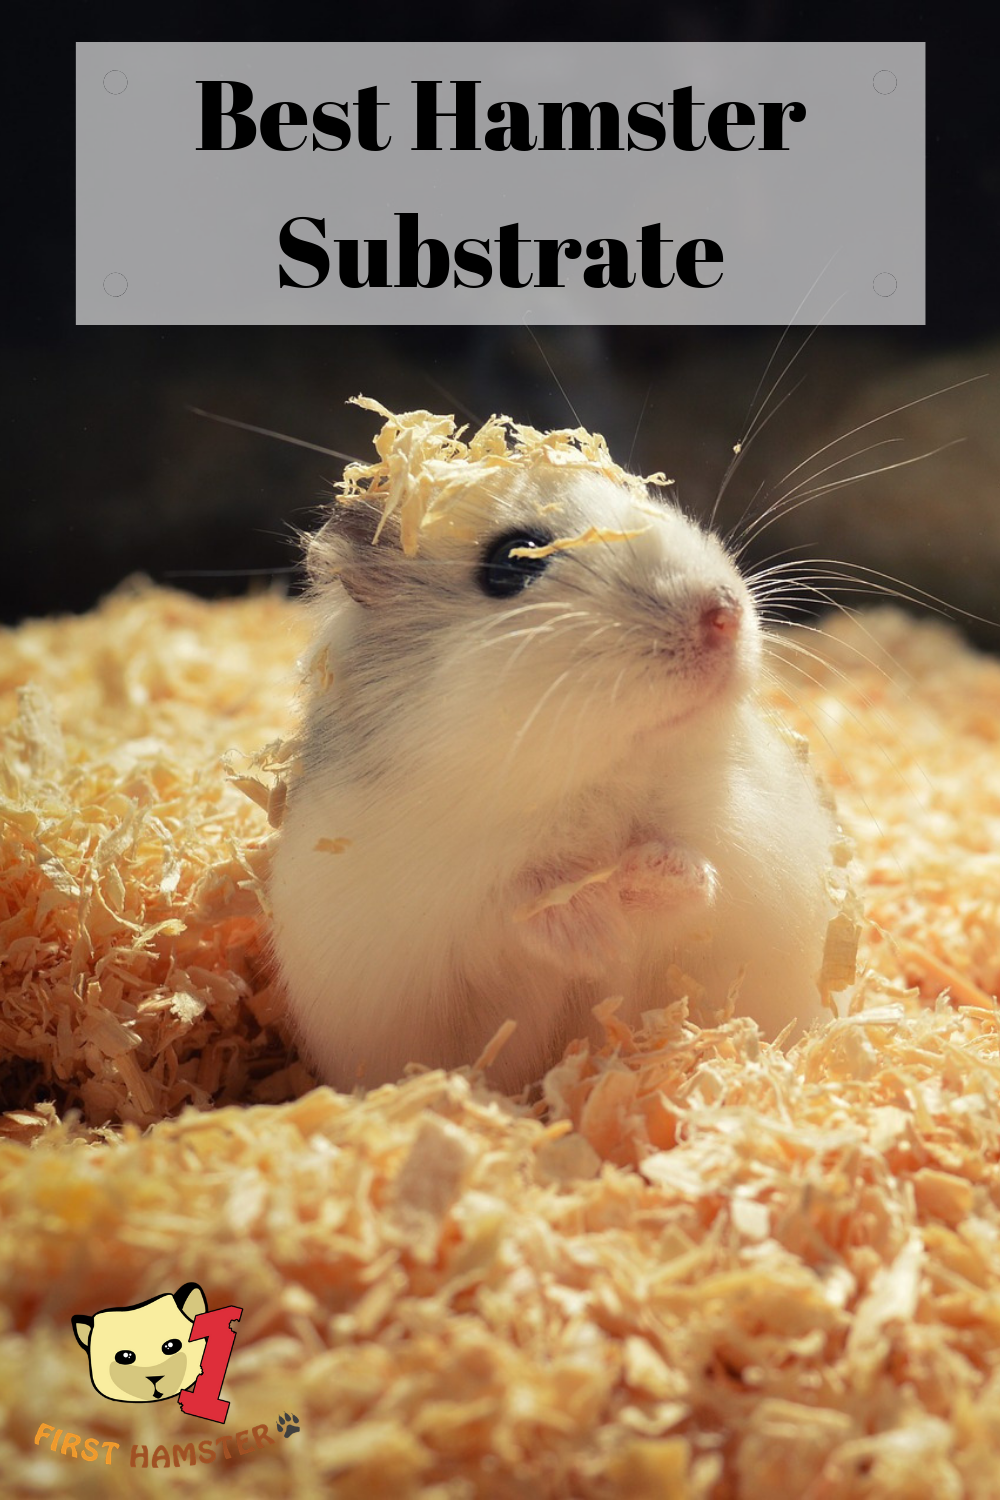 Hamsters prefer bedding that's going to be soft on their